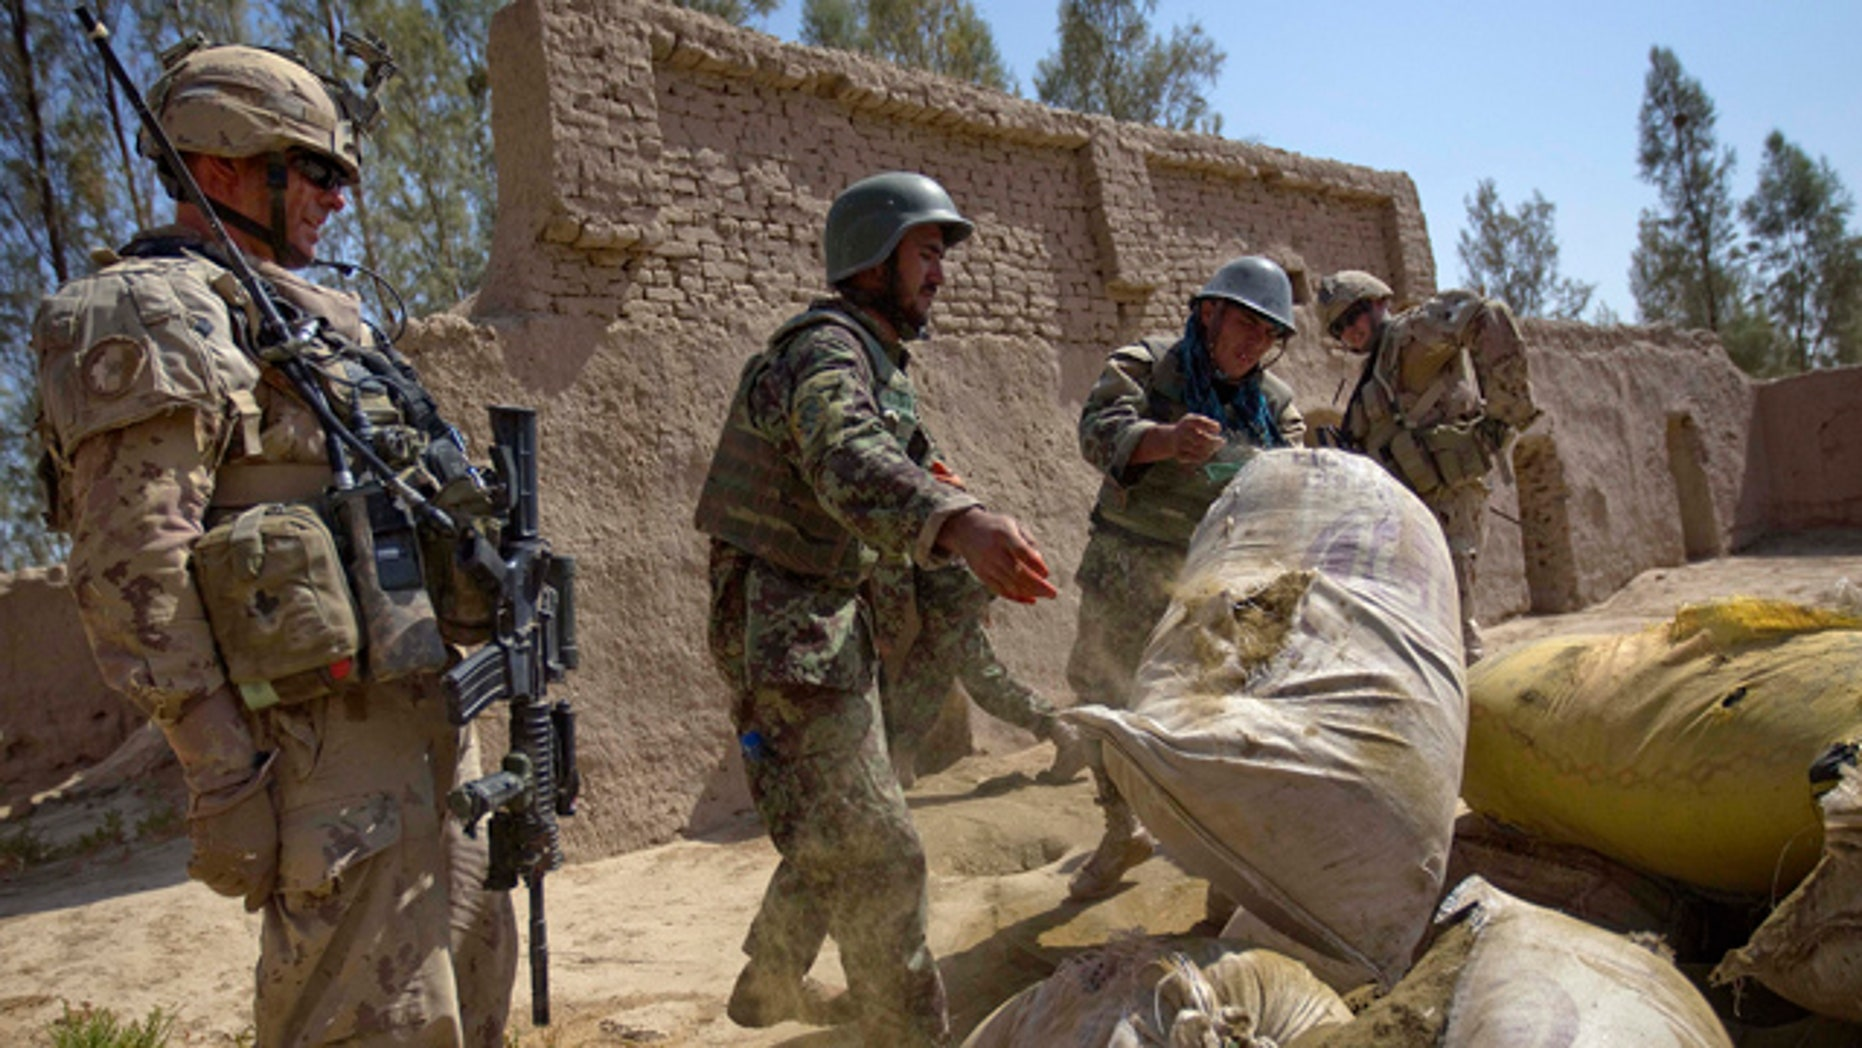 June 27: Afghan Army soldiers pile up approximately a thousand pounds of hashish to burn after it was discovered during a joint operation with Canadian Army's 1st Battalion 22nd Royal Regiment, in the Panjwaii district of Kandahar province, Afghanistan.